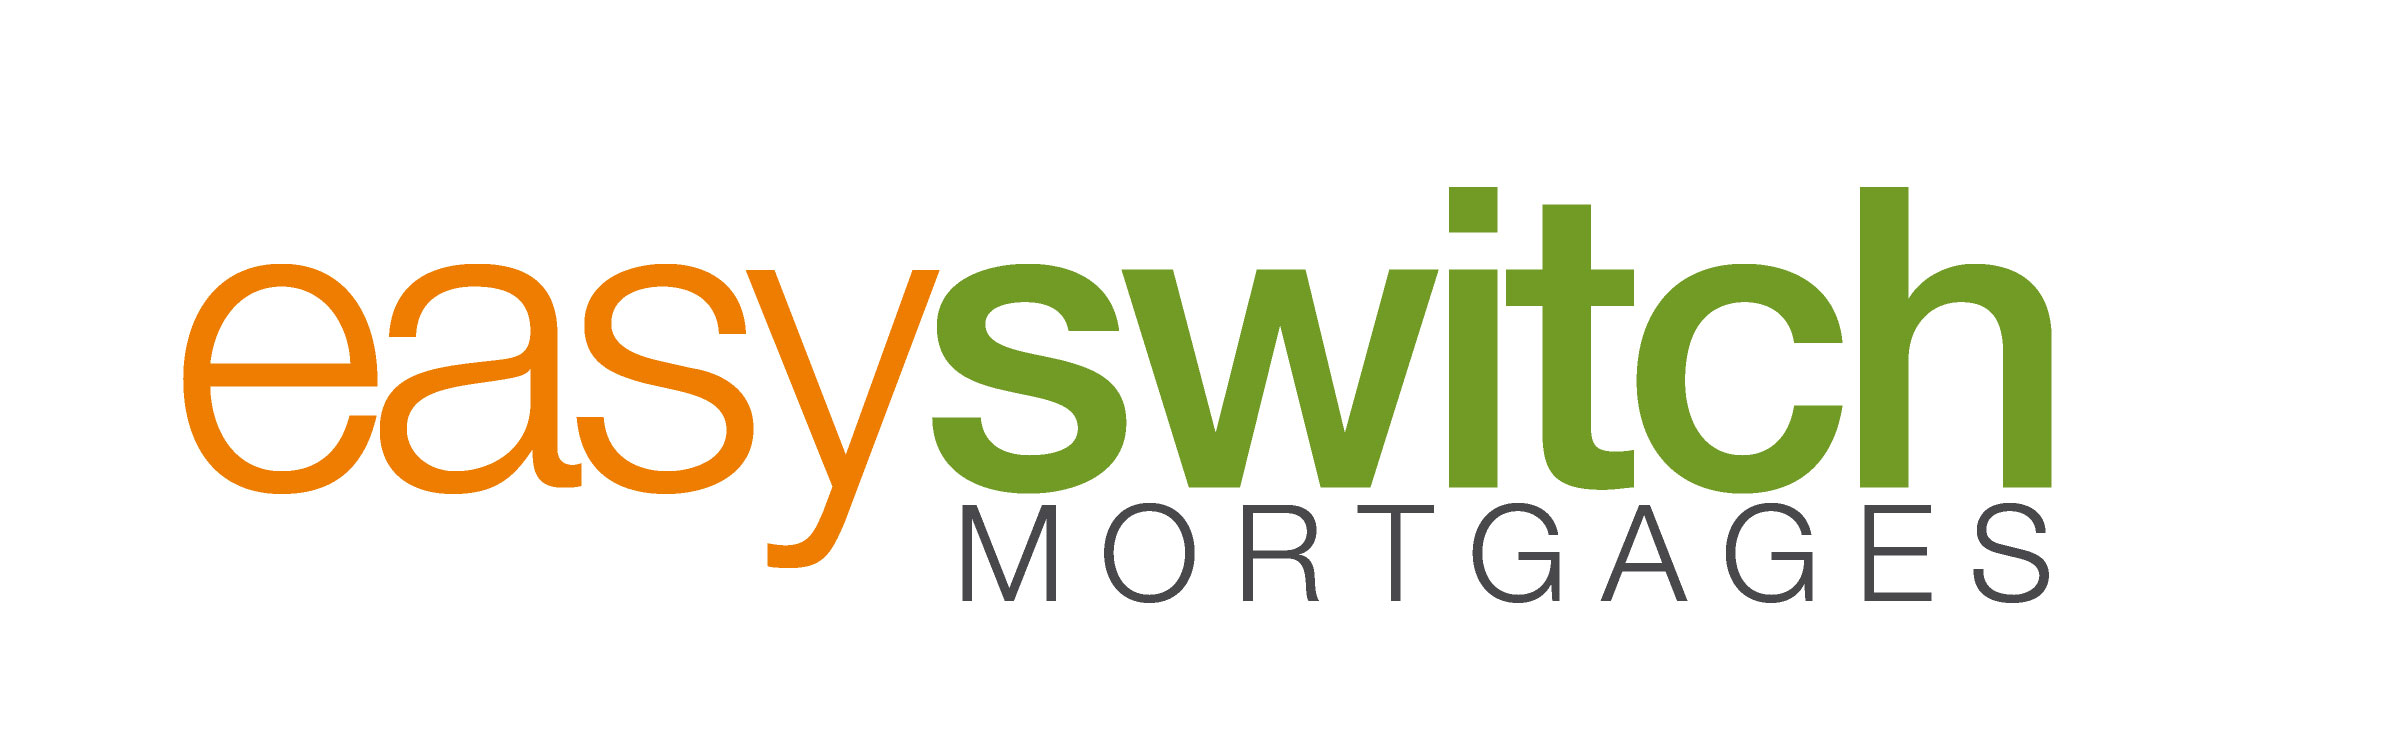 Read Easyswitch Mortgages Reviews